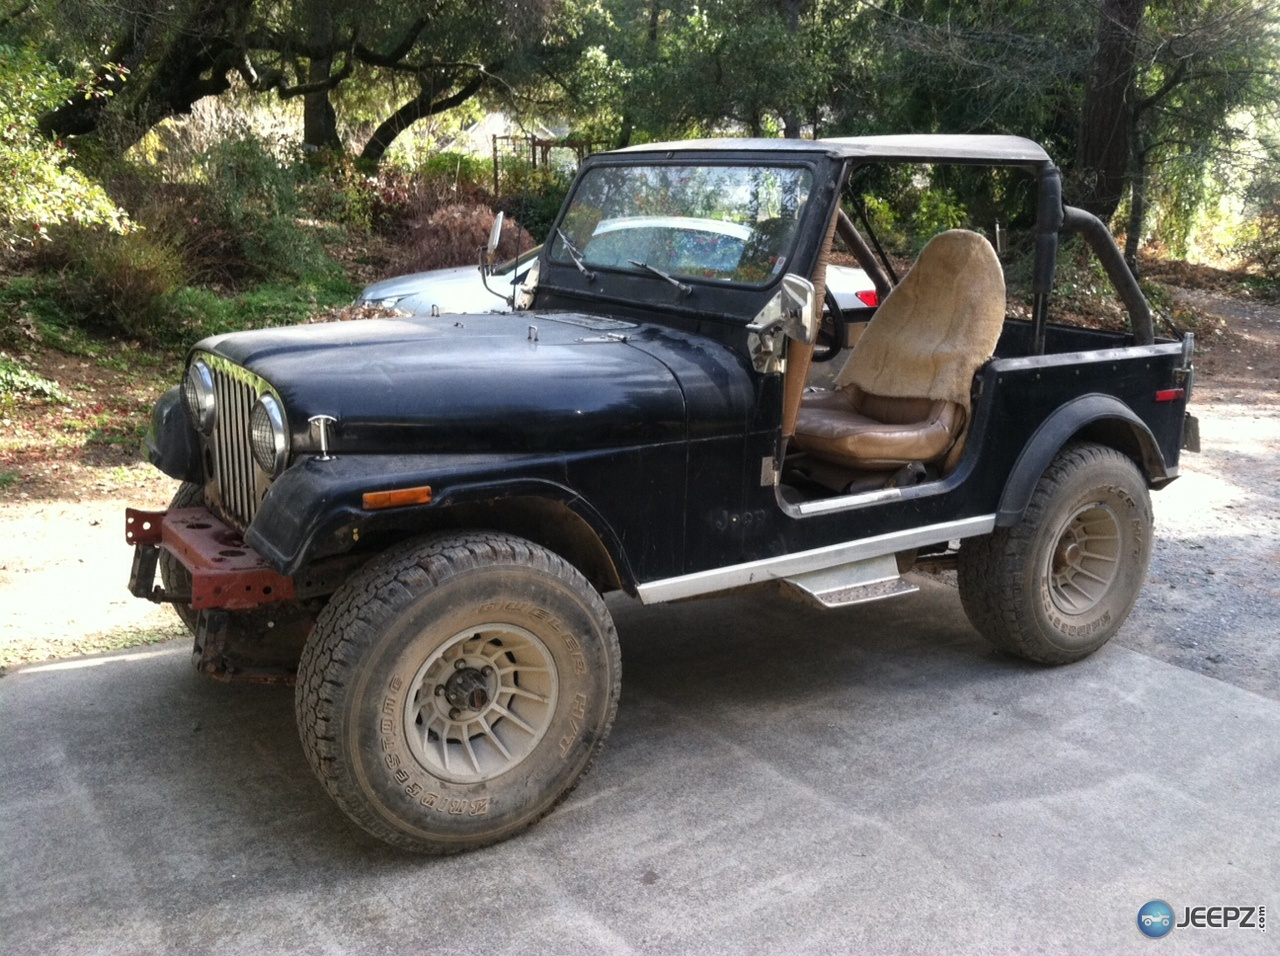 77 Jeep Cj7 Models